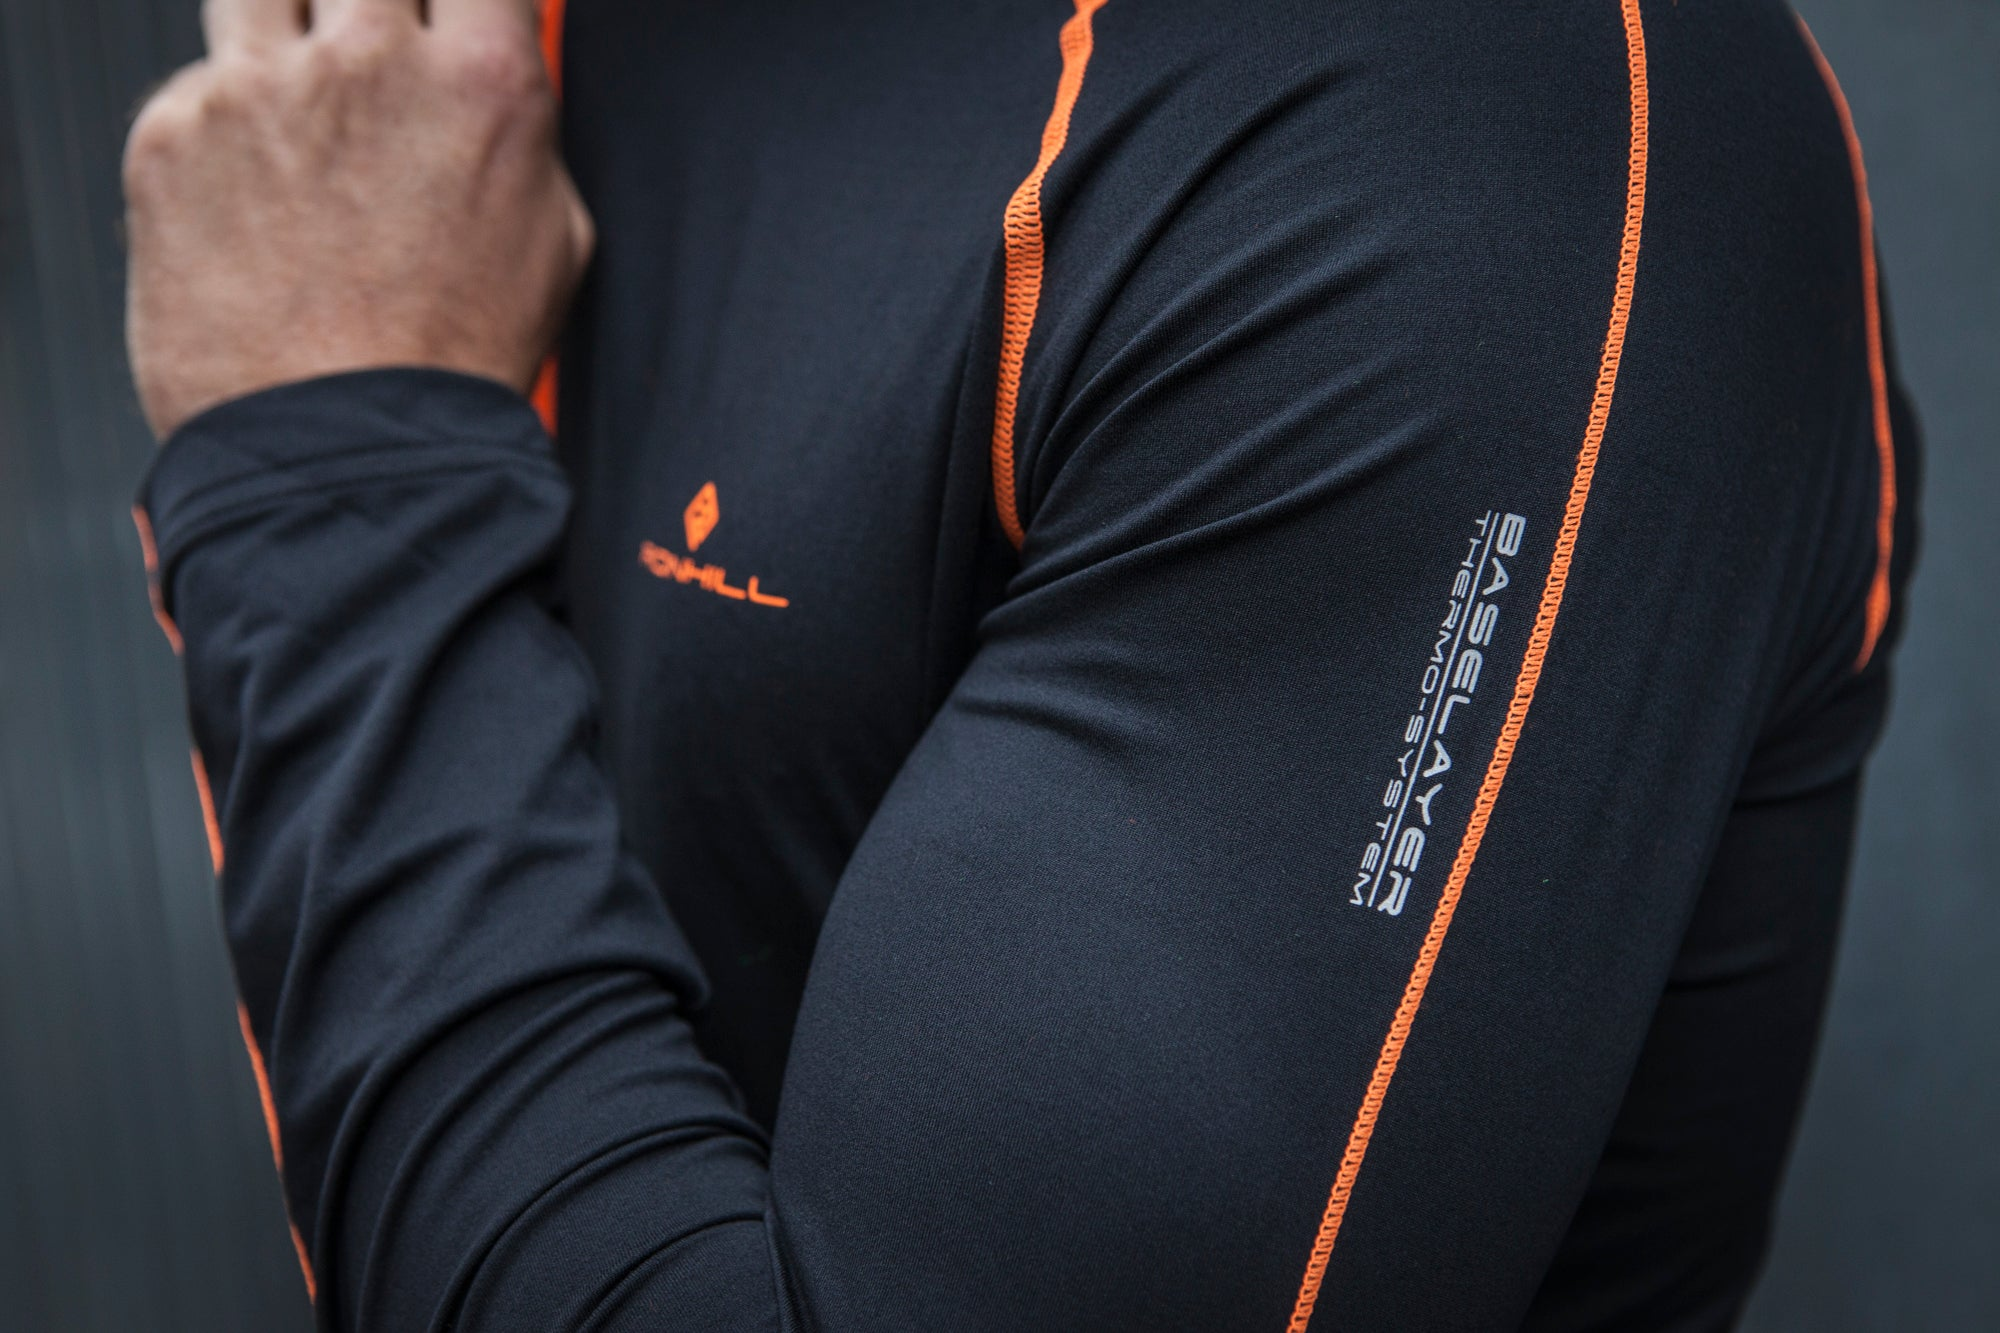 Base Layer – keeping you warm, keeping you comfy